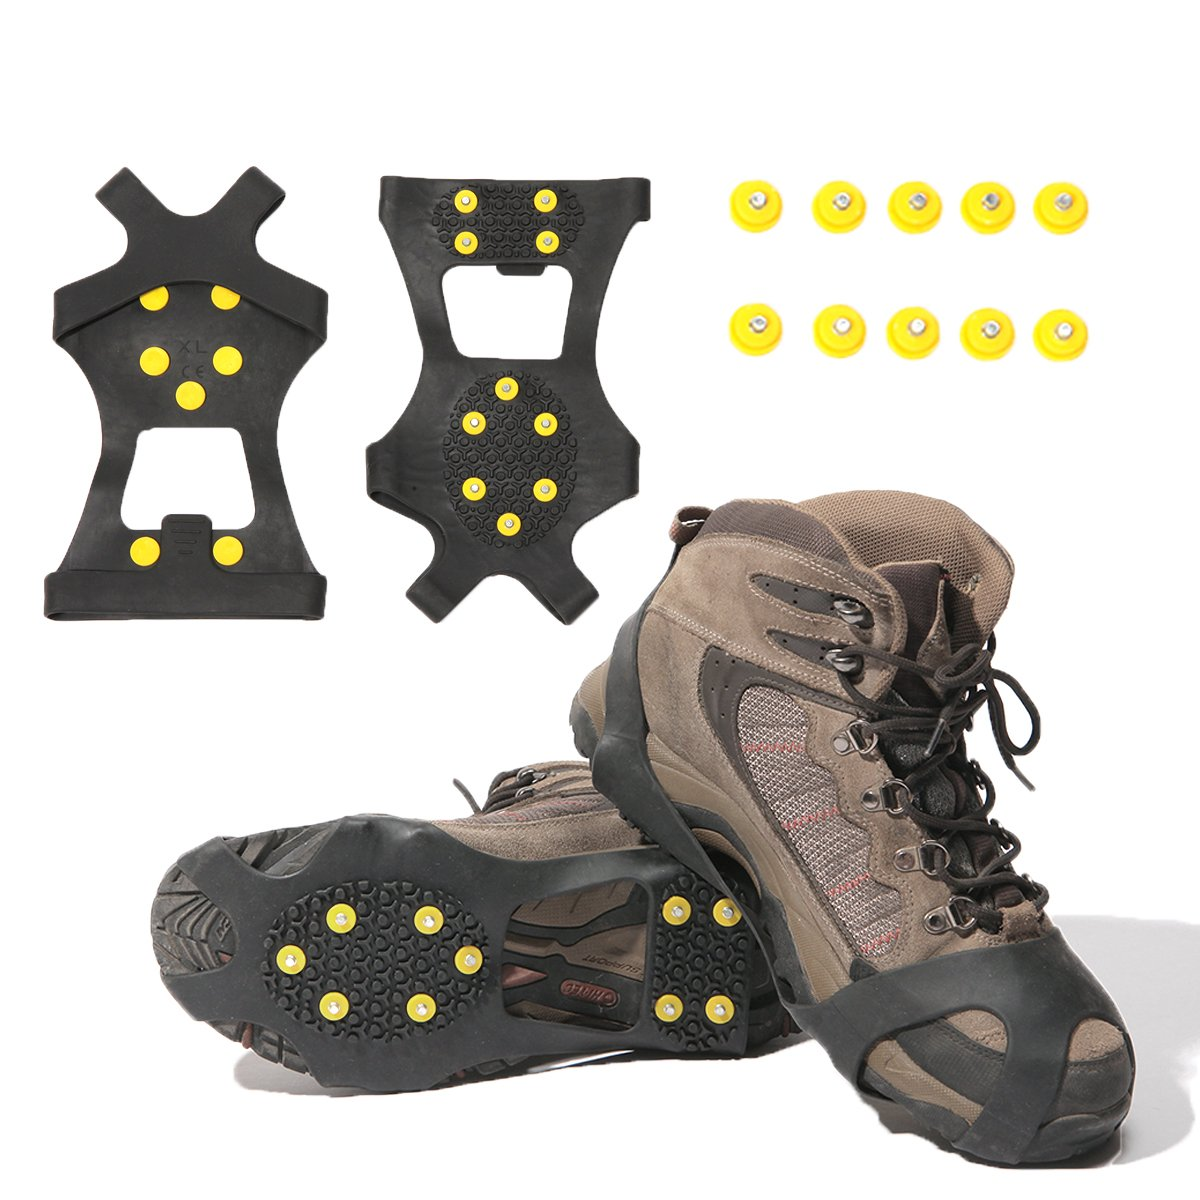 Gpeng Ice Grips Traction Cleats Ice Cleat Snow Grippers